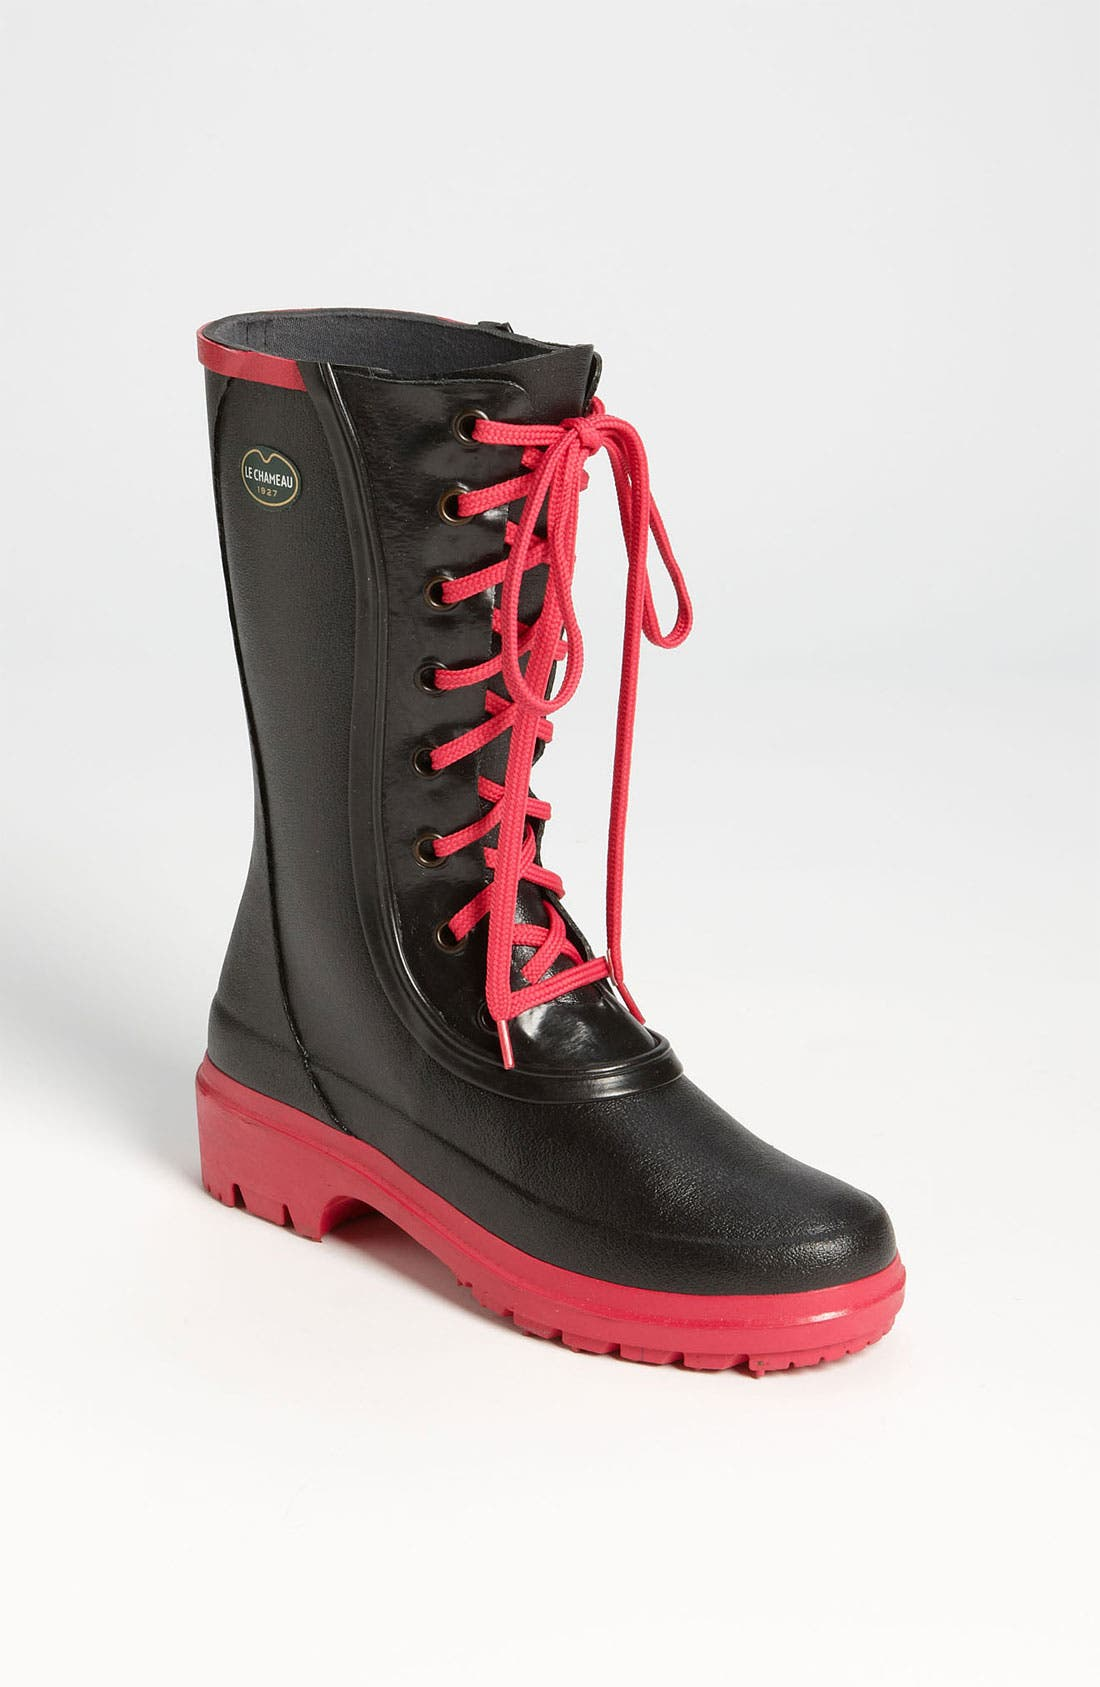 Alternate Image 1 Selected - Le Chameau 'Saiga' Rain Boot (Women)